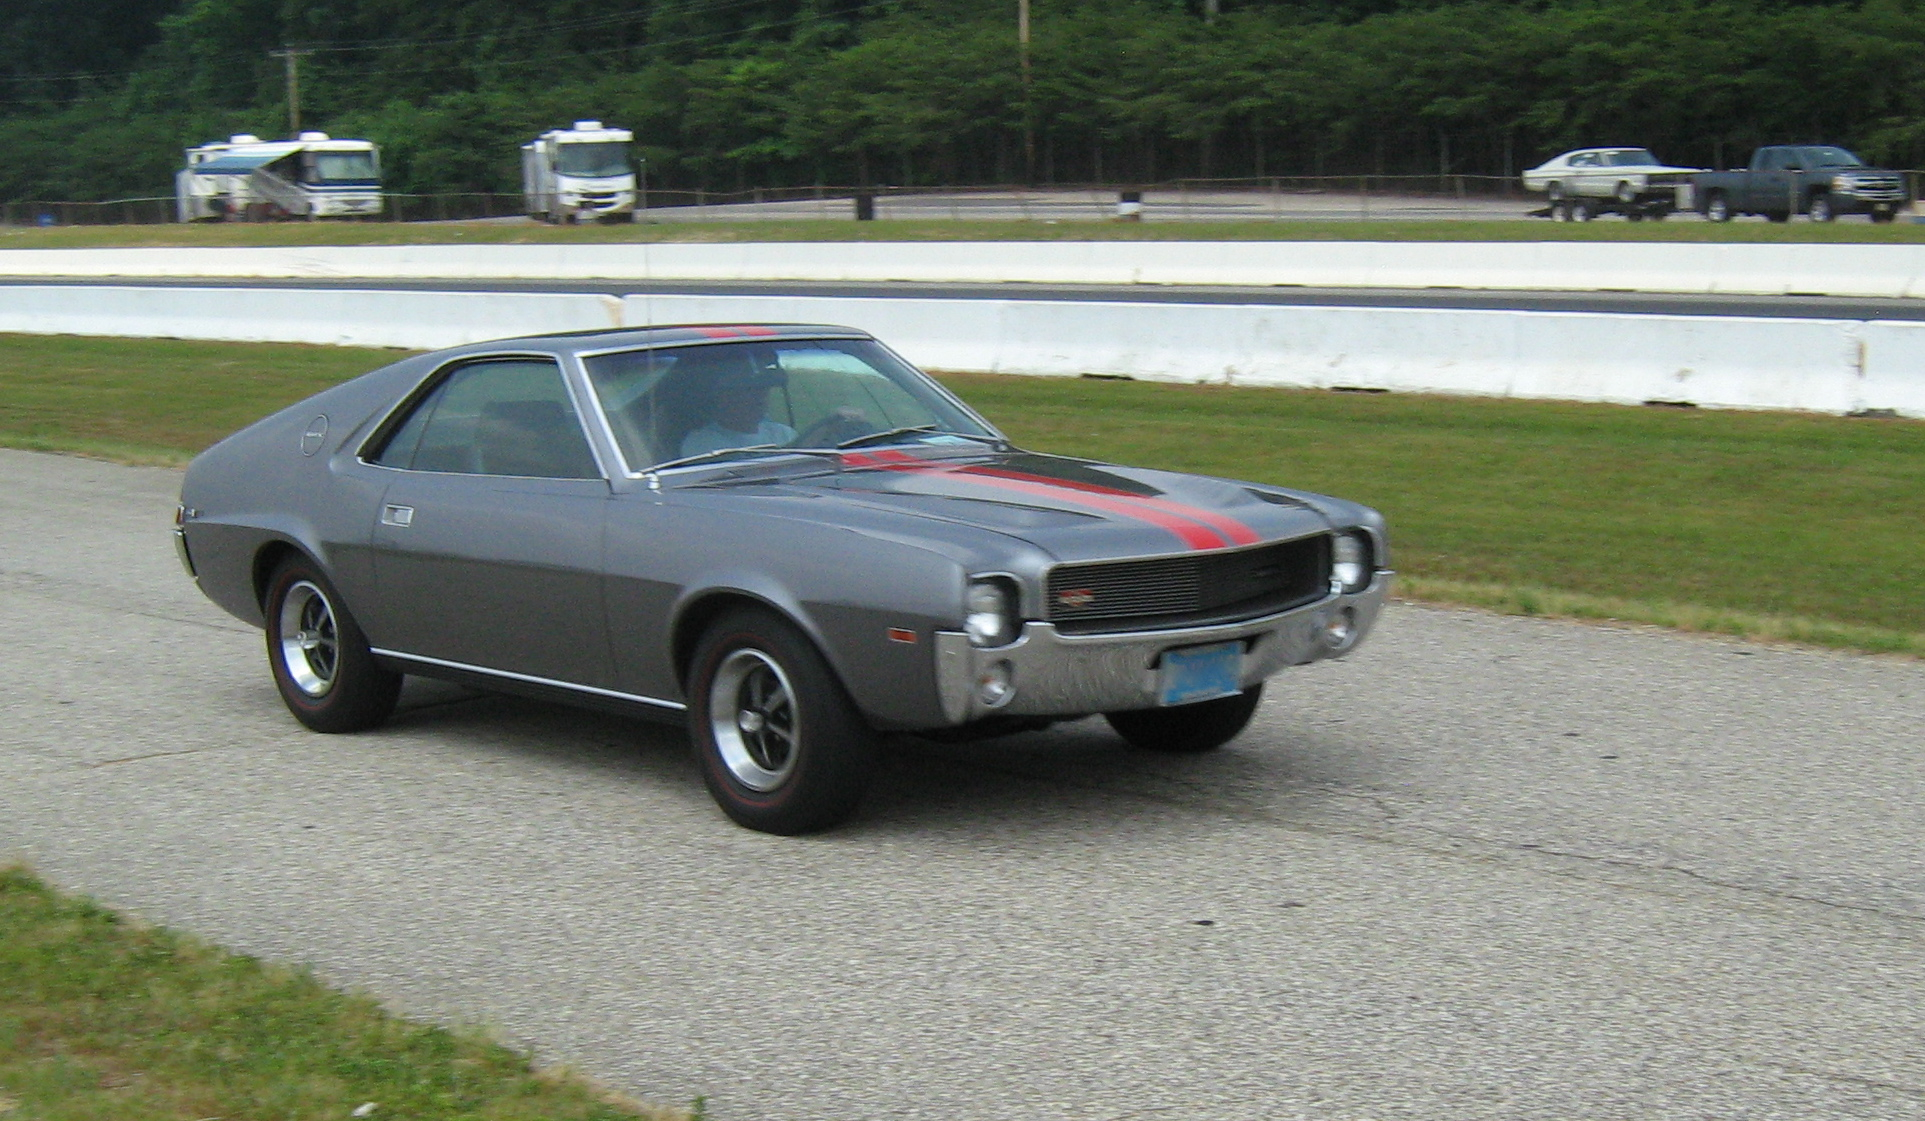 1969 Pontiac Gto Frame Off Restoration Numbers Matching C 179 in addition 1974 Dodge Charger together with 1970 Dodge Charger Convertible as well File 1969 AMC AMX Castilian Gray mdD 1 in addition 1965 Buick Wildcat Gs Pictures Interior Engine. on american muscle car 69